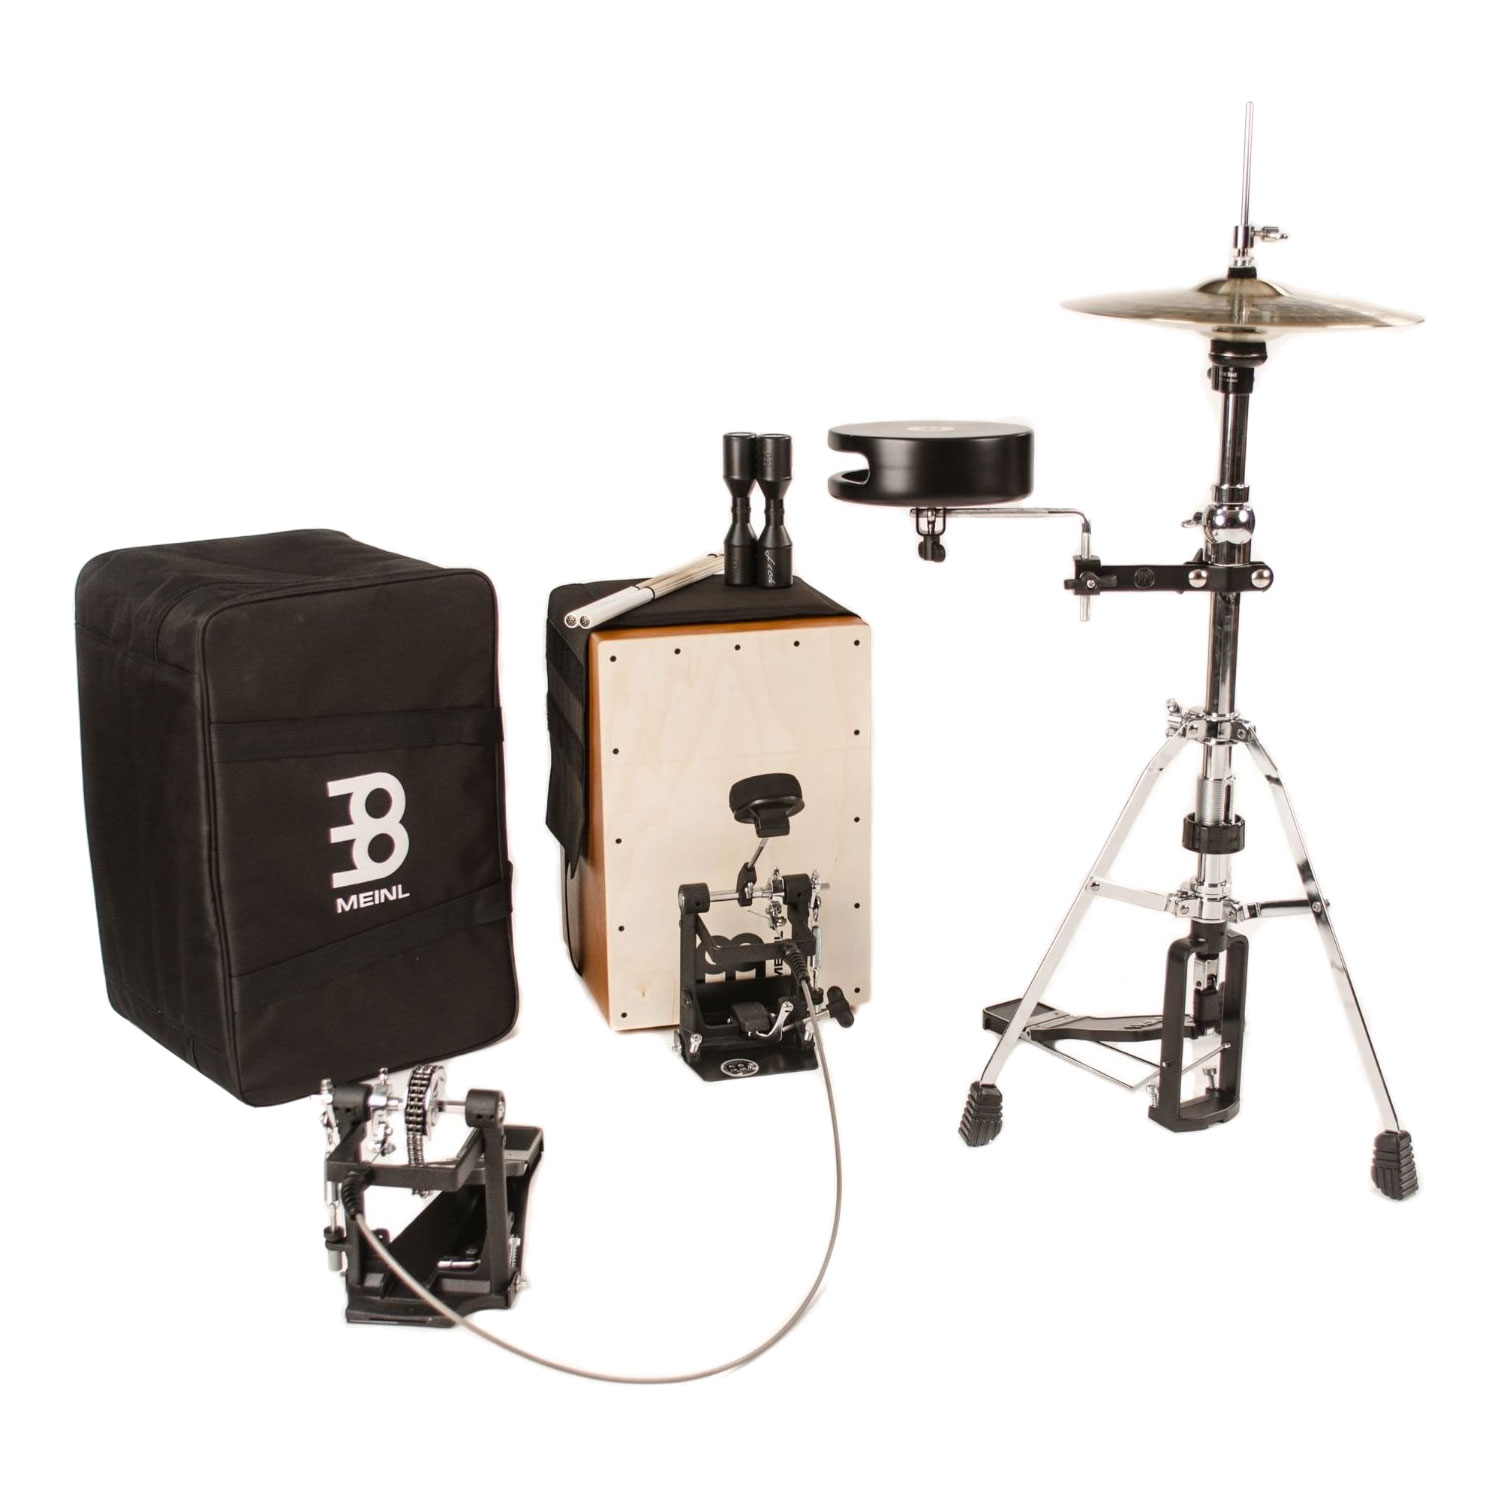 meinl cajon drum set package with free bag multi rods shaker caj drumset. Black Bedroom Furniture Sets. Home Design Ideas